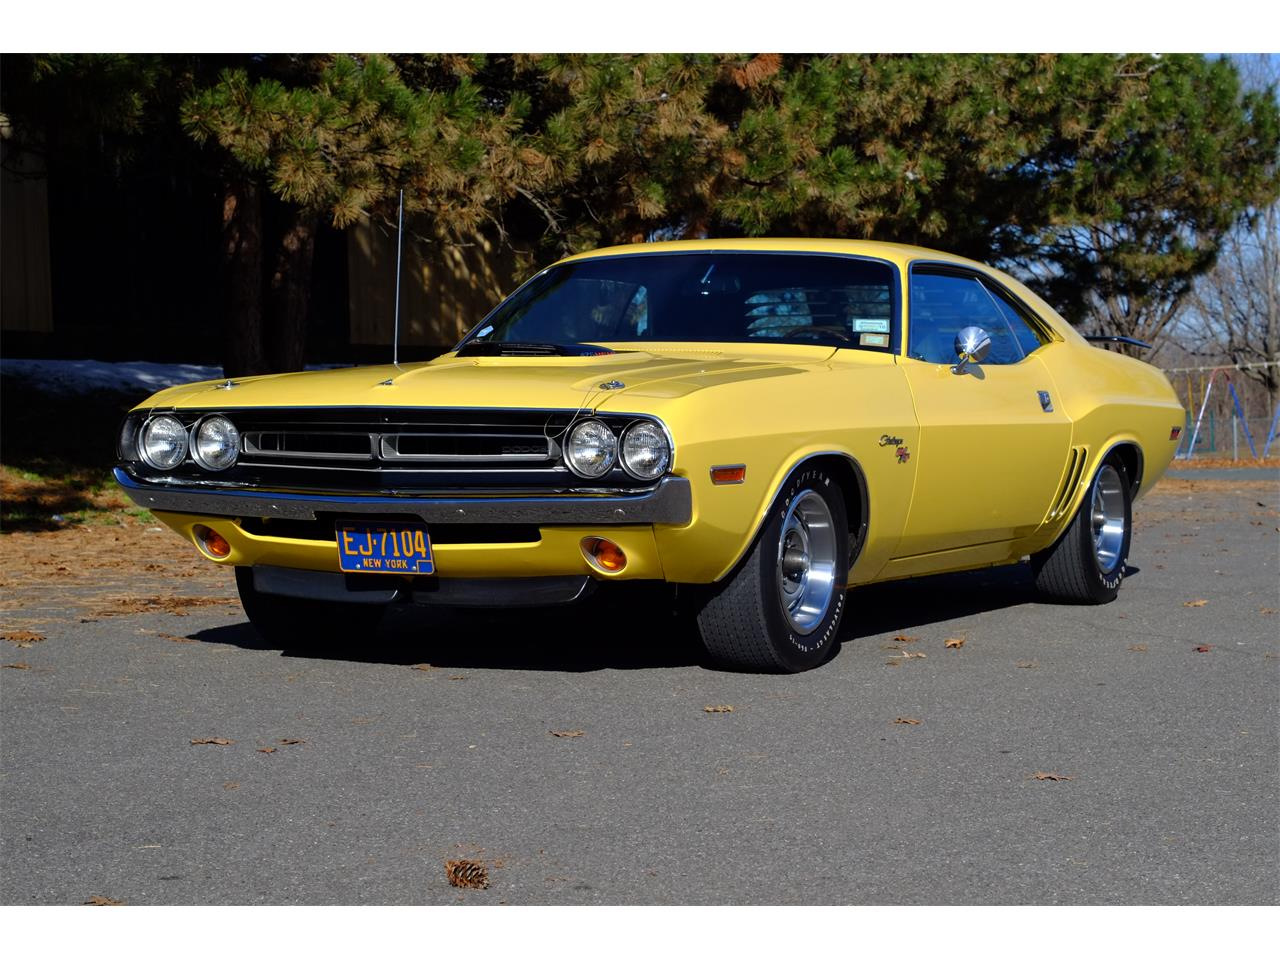 Large Picture of Classic '71 Challenger R/T 426 Hemi - $325,000.00 Offered by Automotion - JY6E